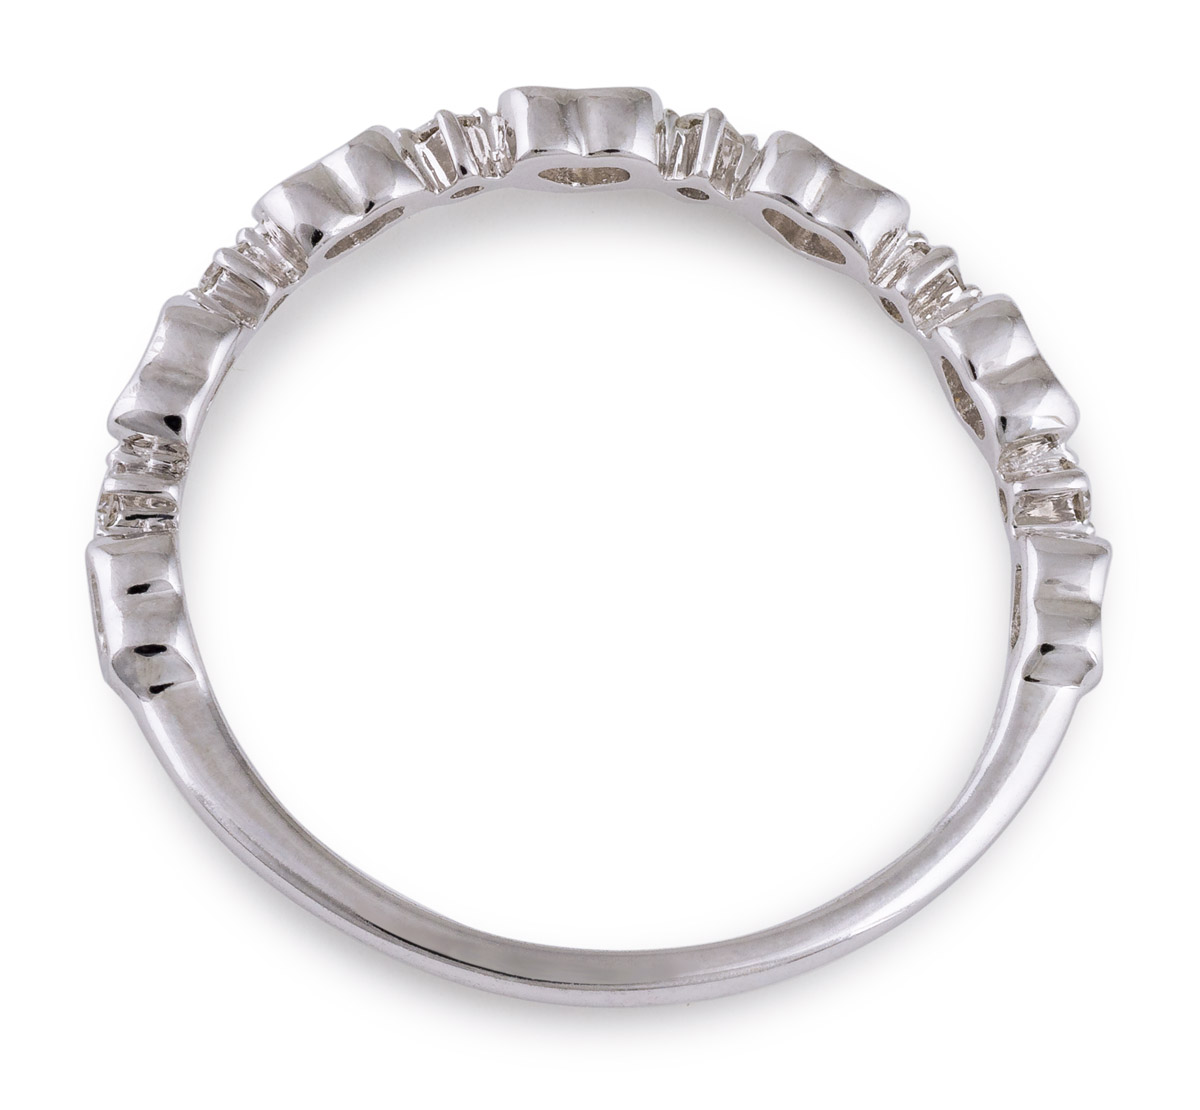 Minimalist Heart Band with Diamond Accents - Top